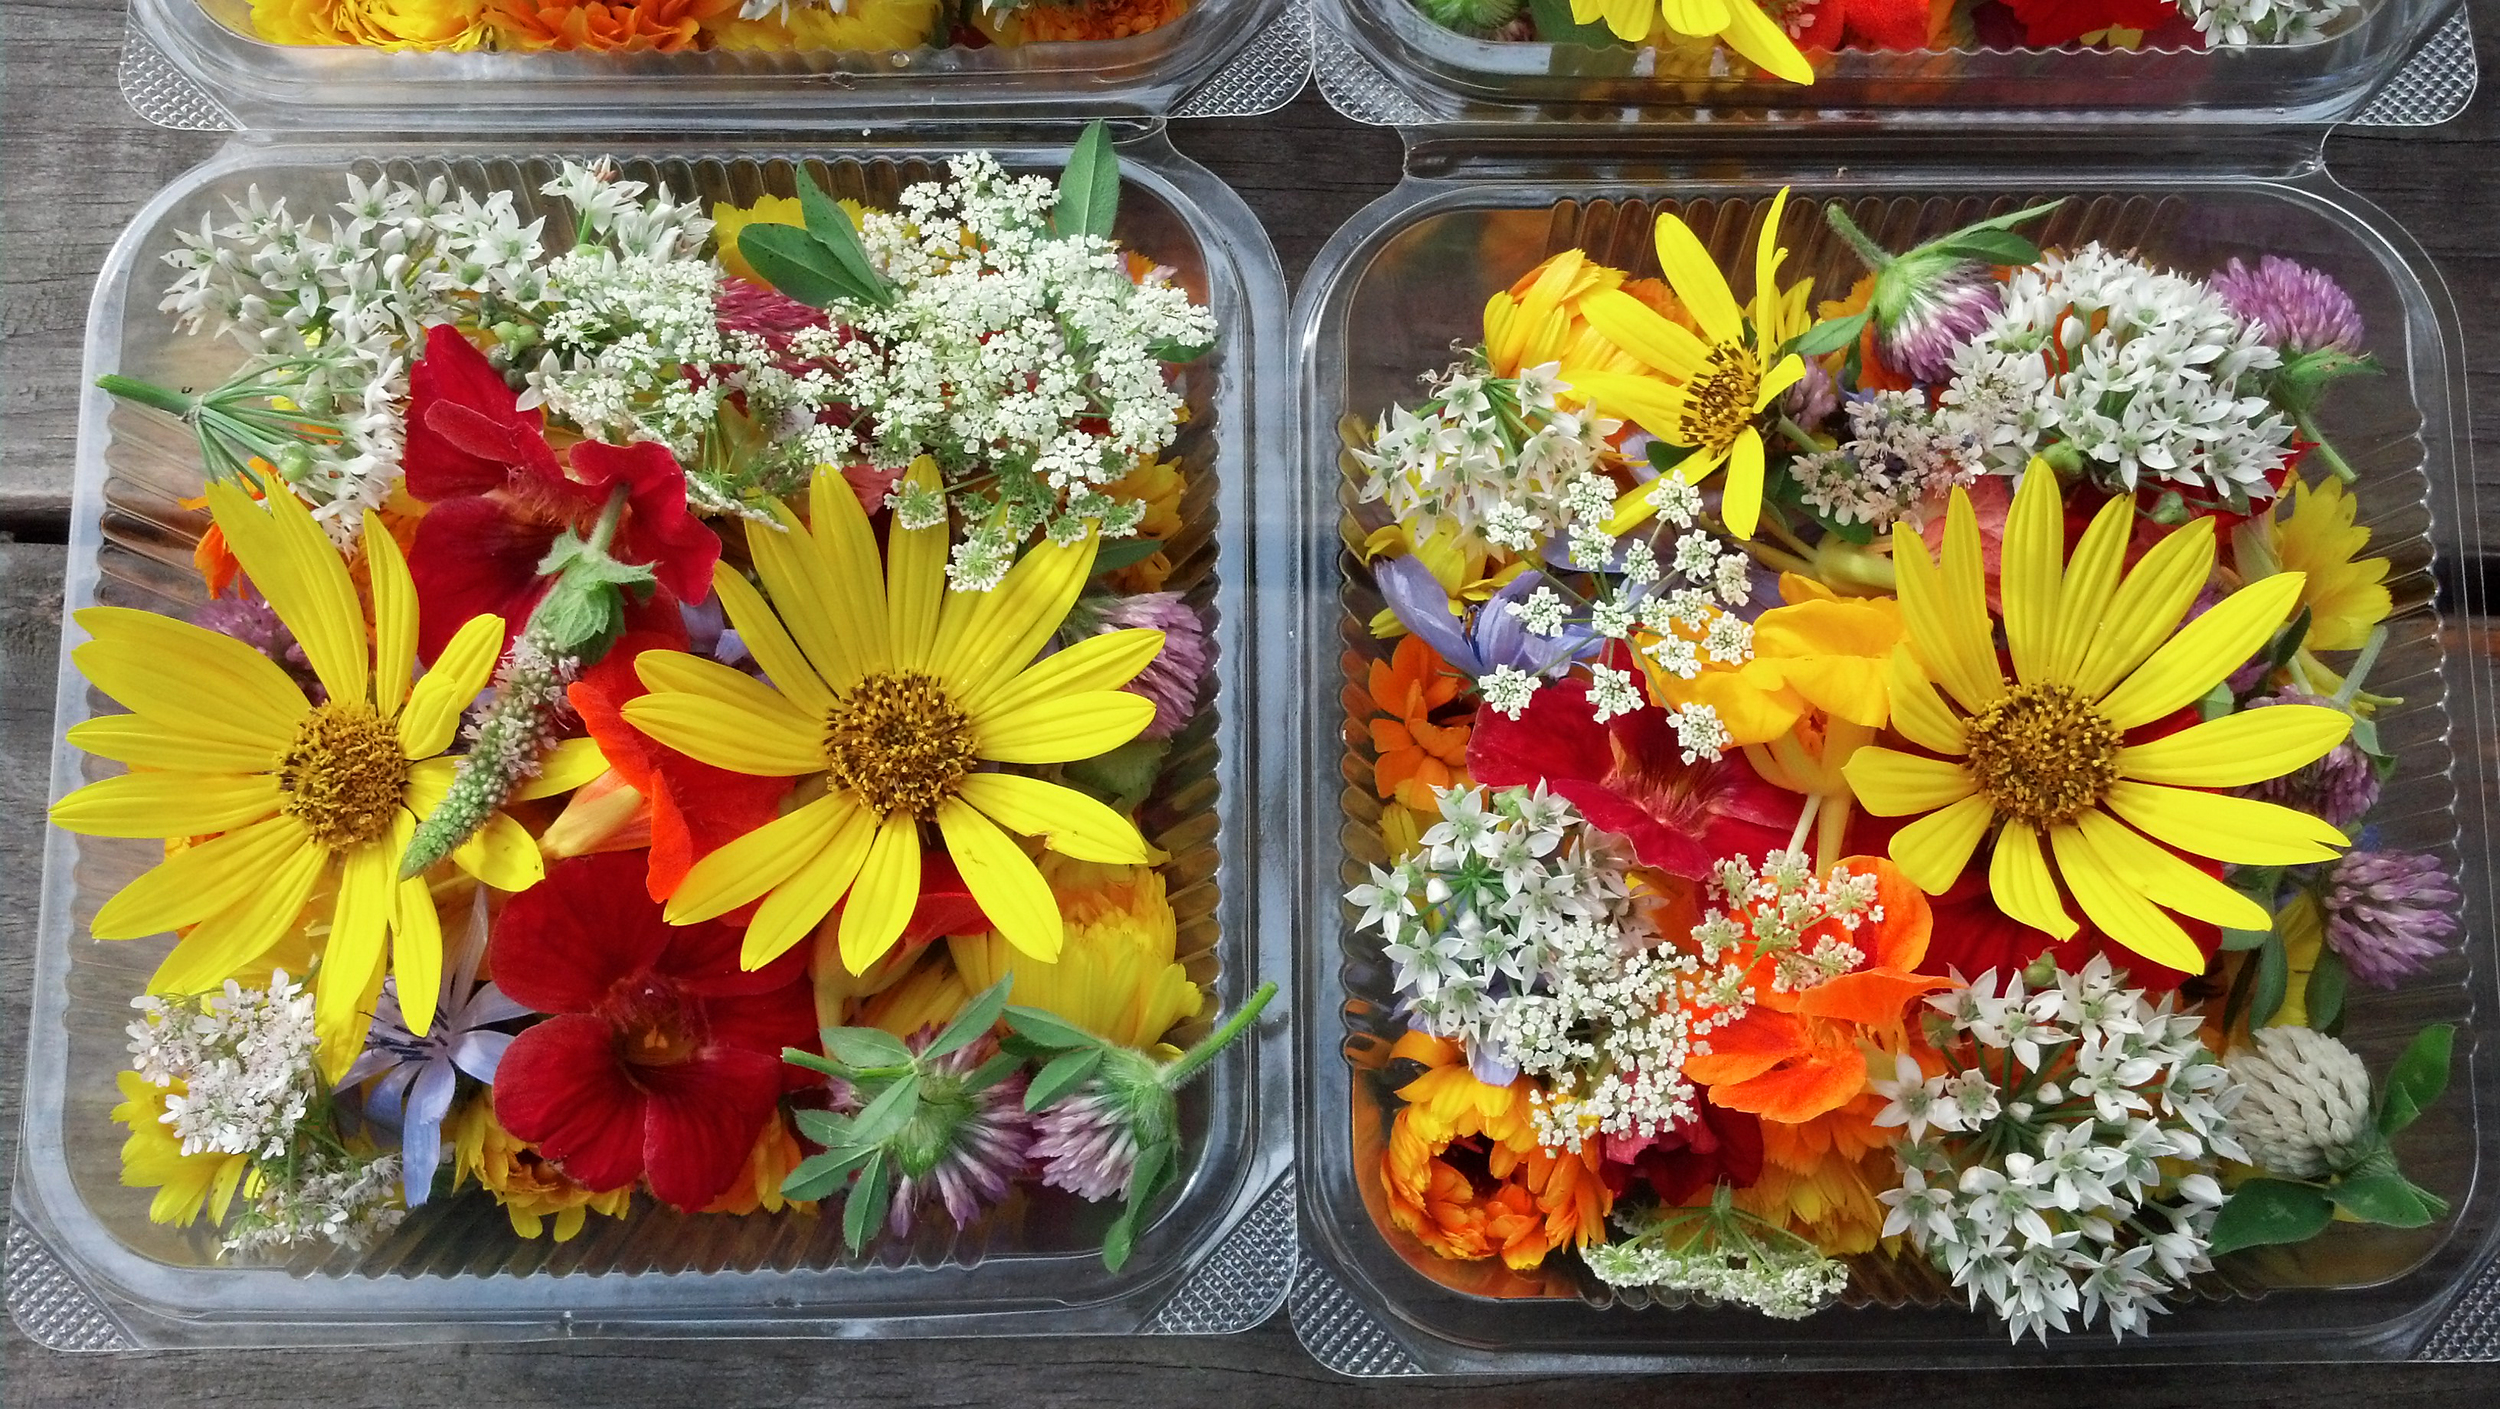 Copy of Edible flowers